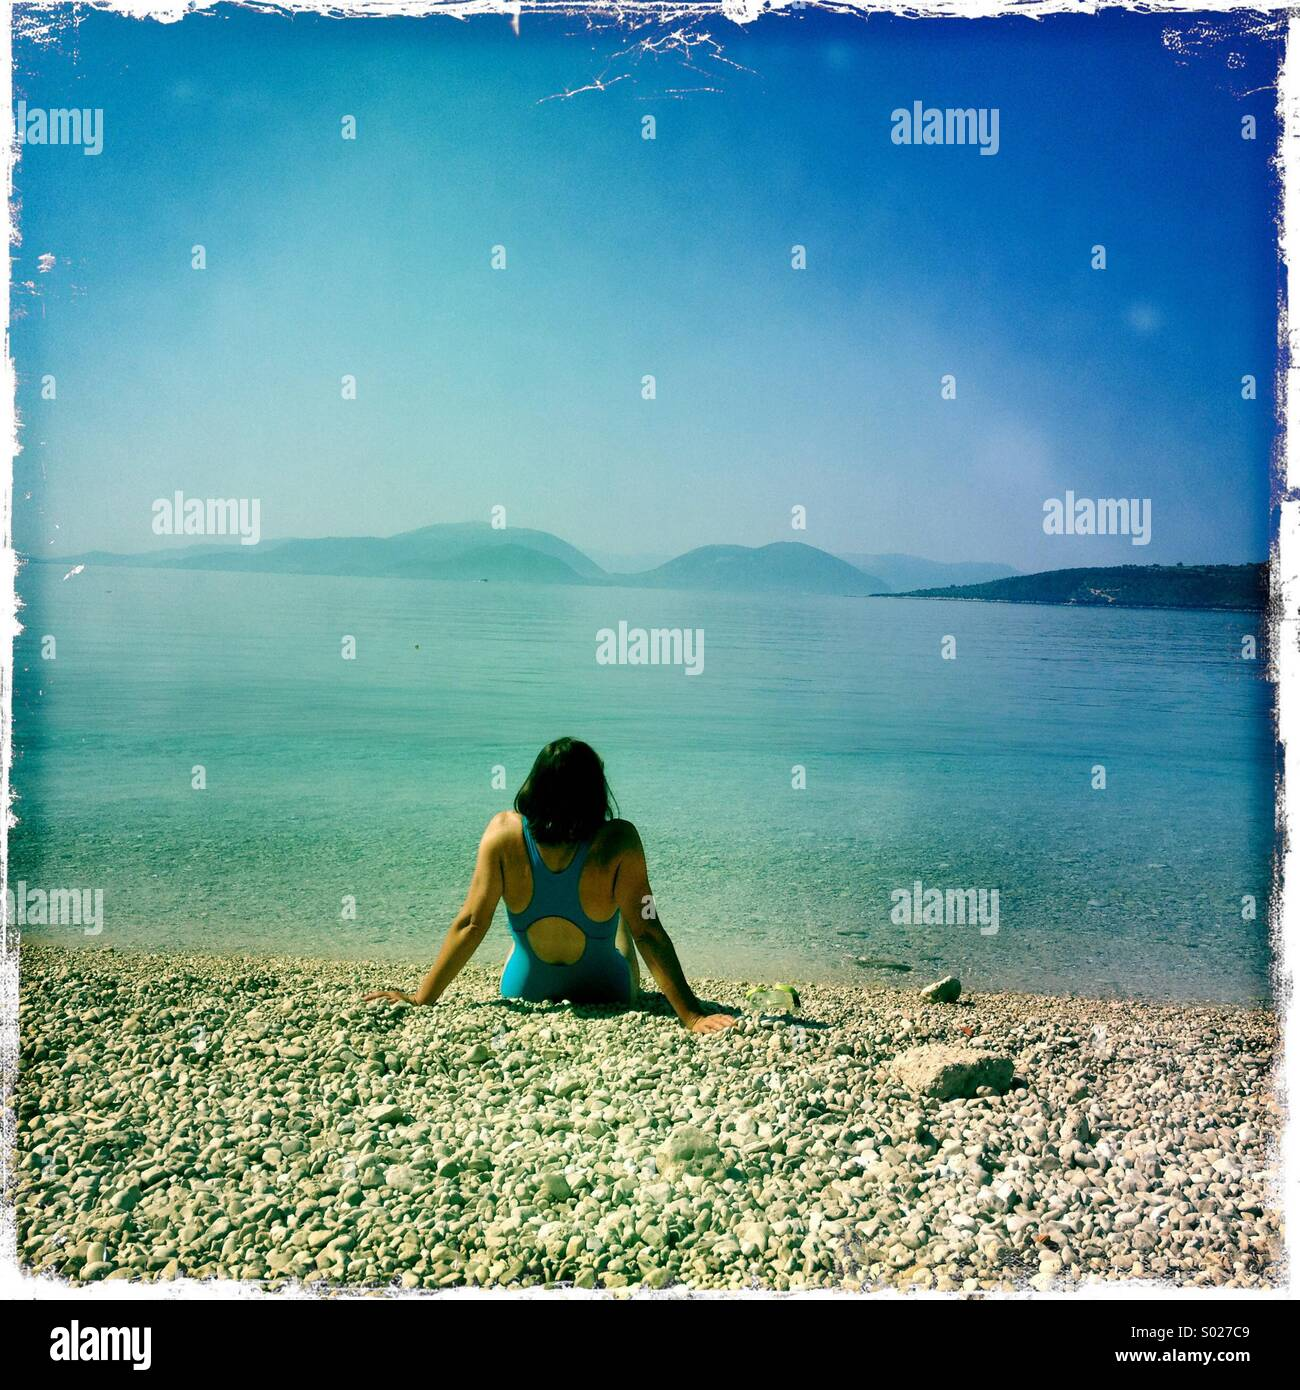 Woman alone on beach, Lefkada, Greece - Stock Image